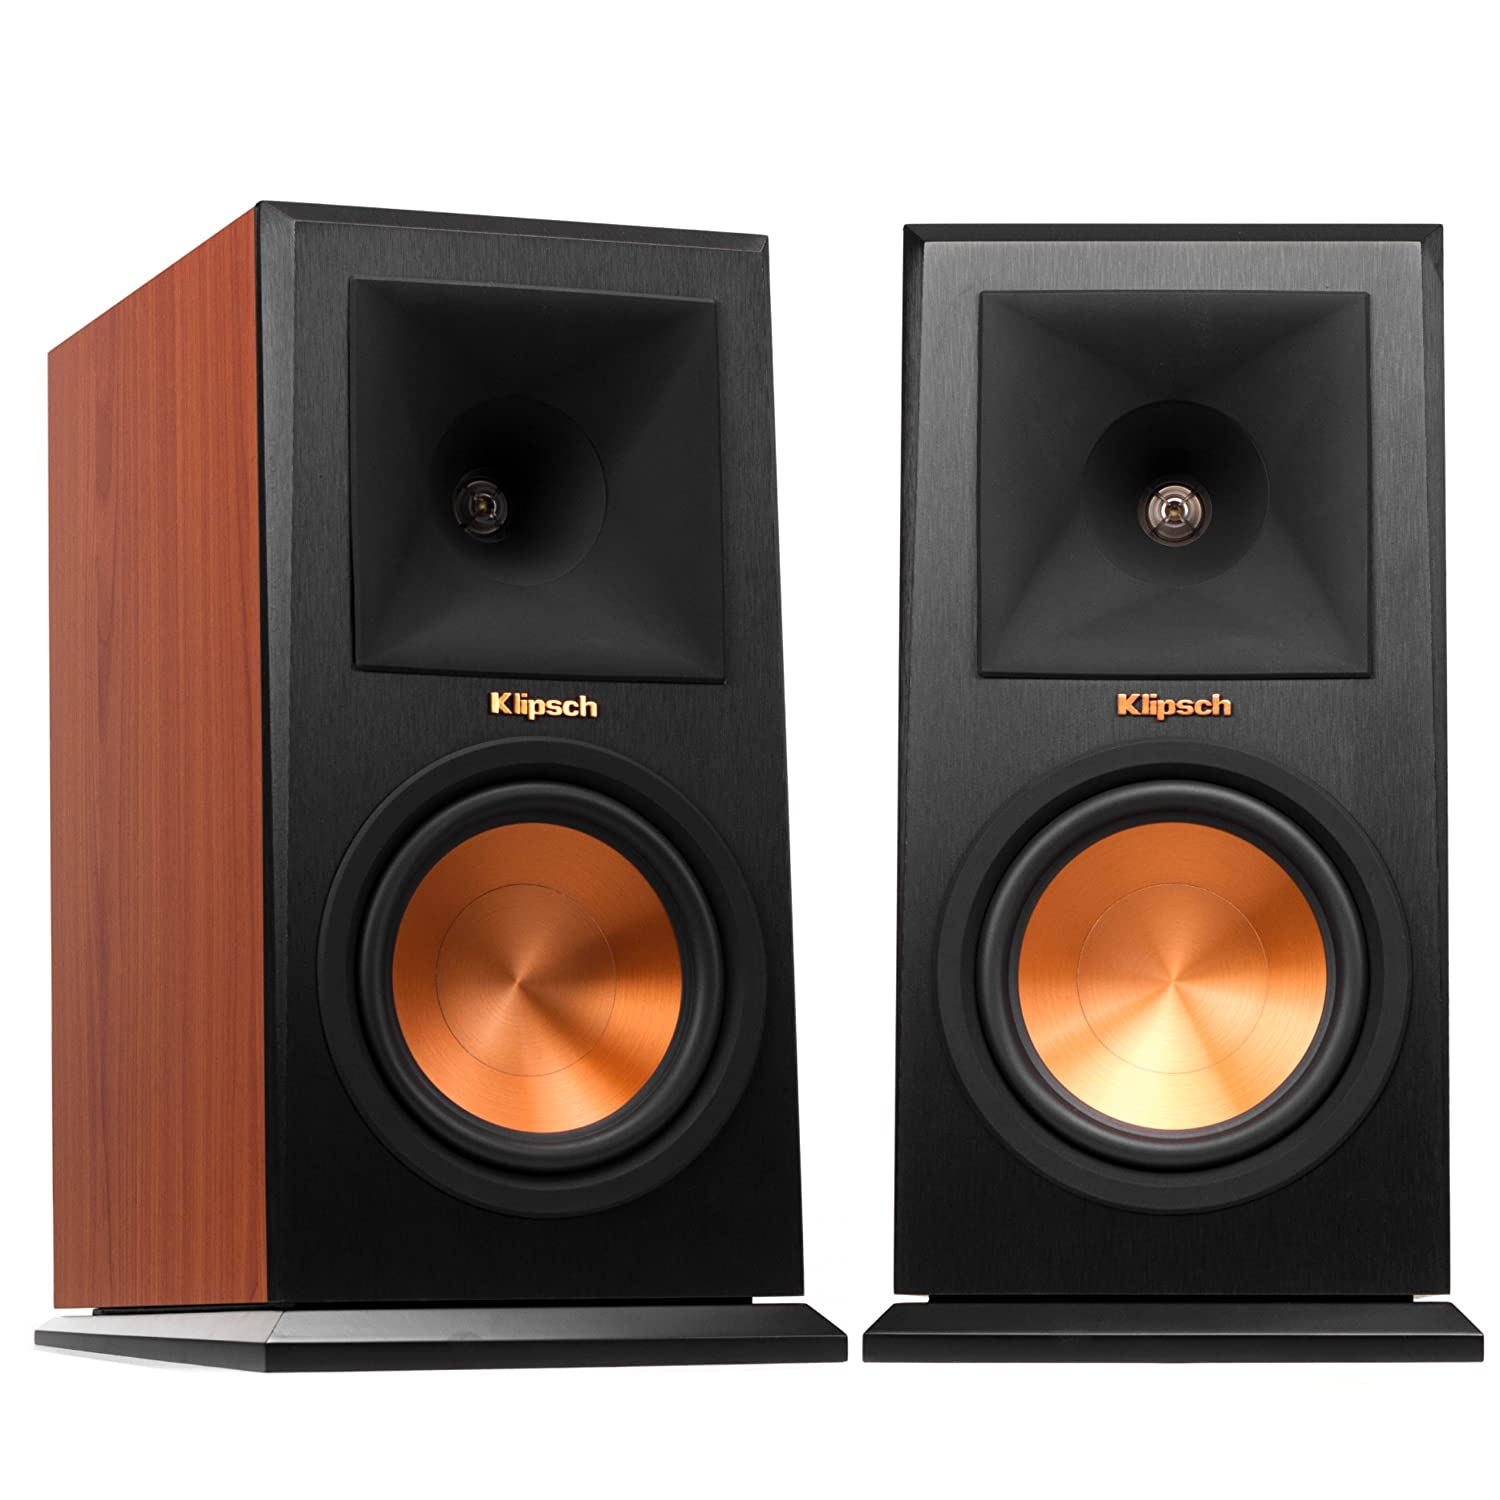 r pair bookshelf digital klipsch speakers cinema